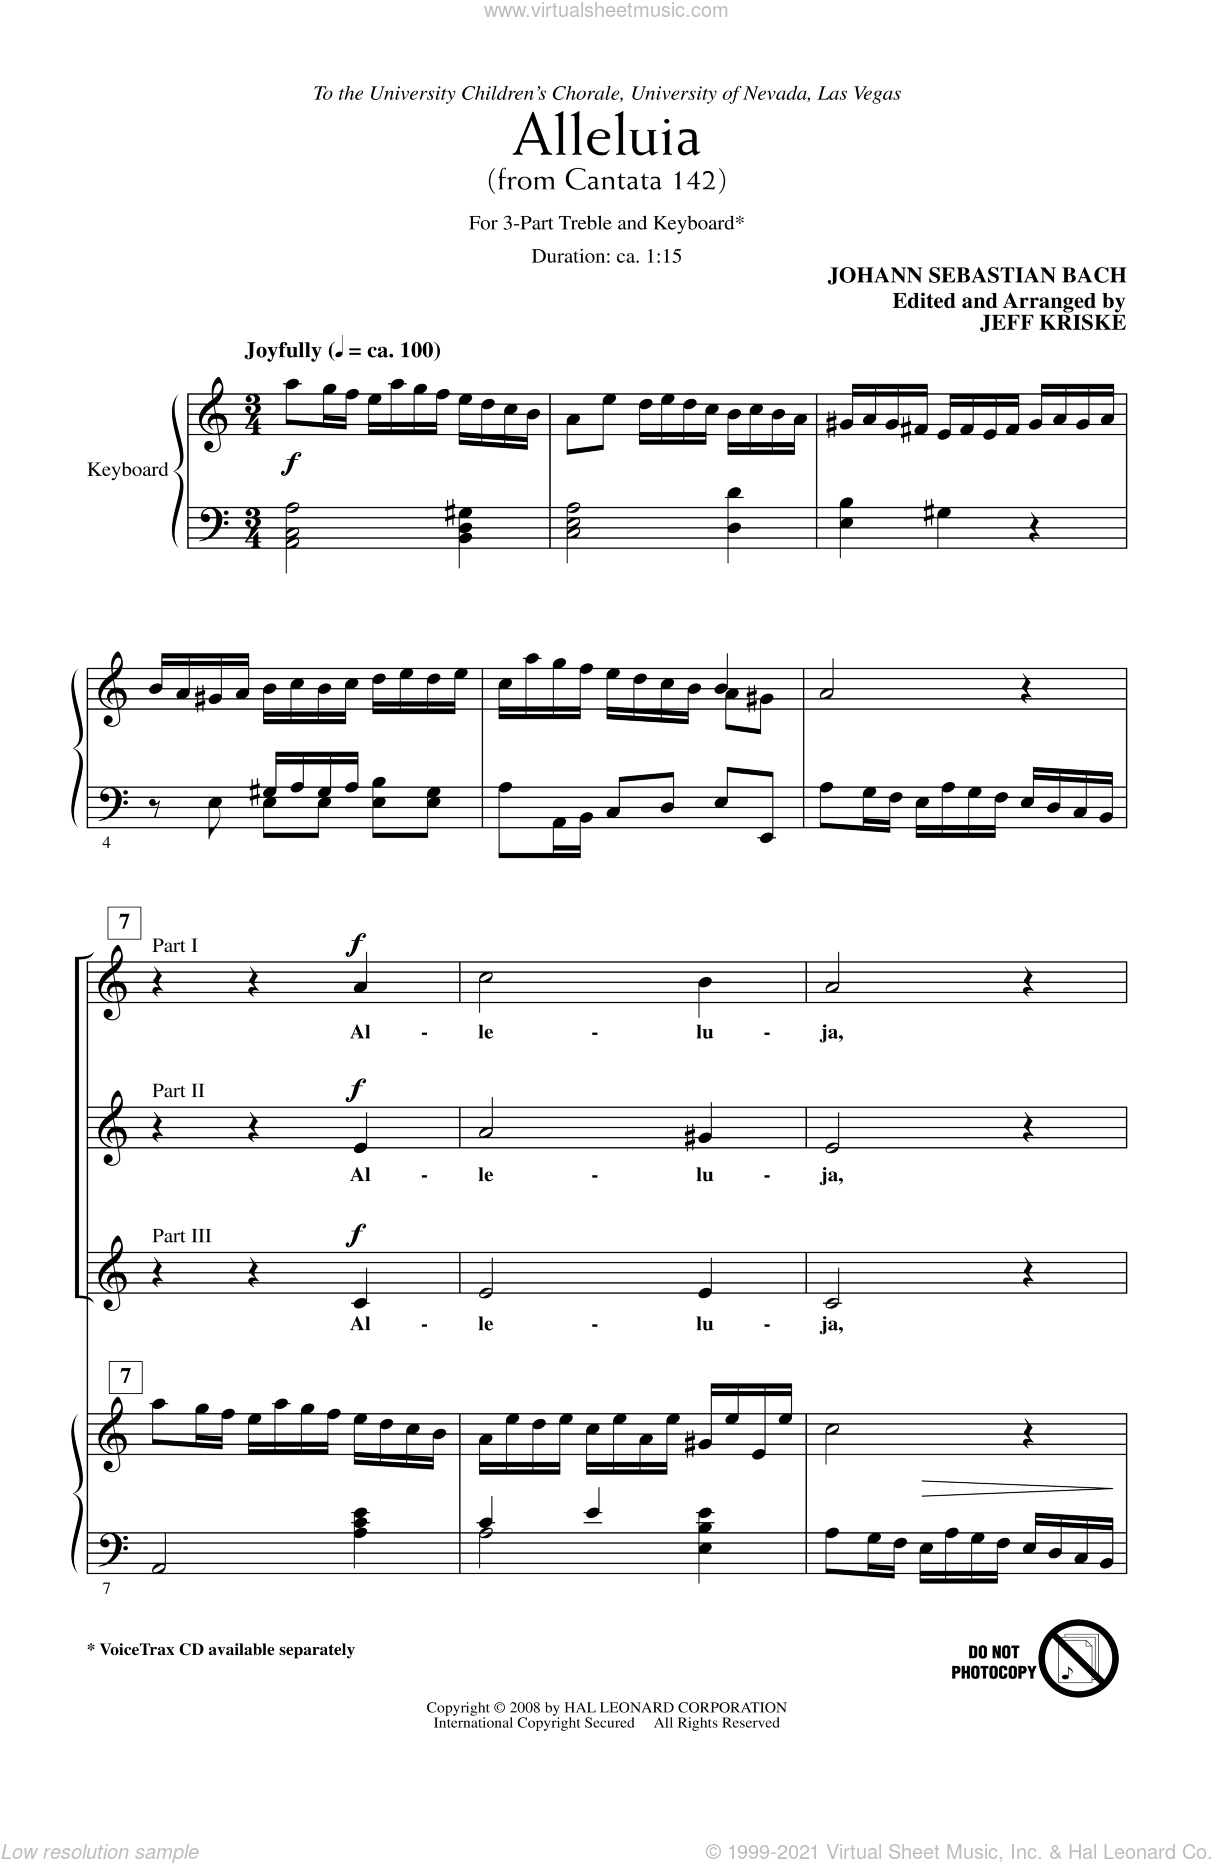 Alleluia From Cantata 142 sheet music for choir and piano (chamber ensemble) by Johann Sebastian Bach